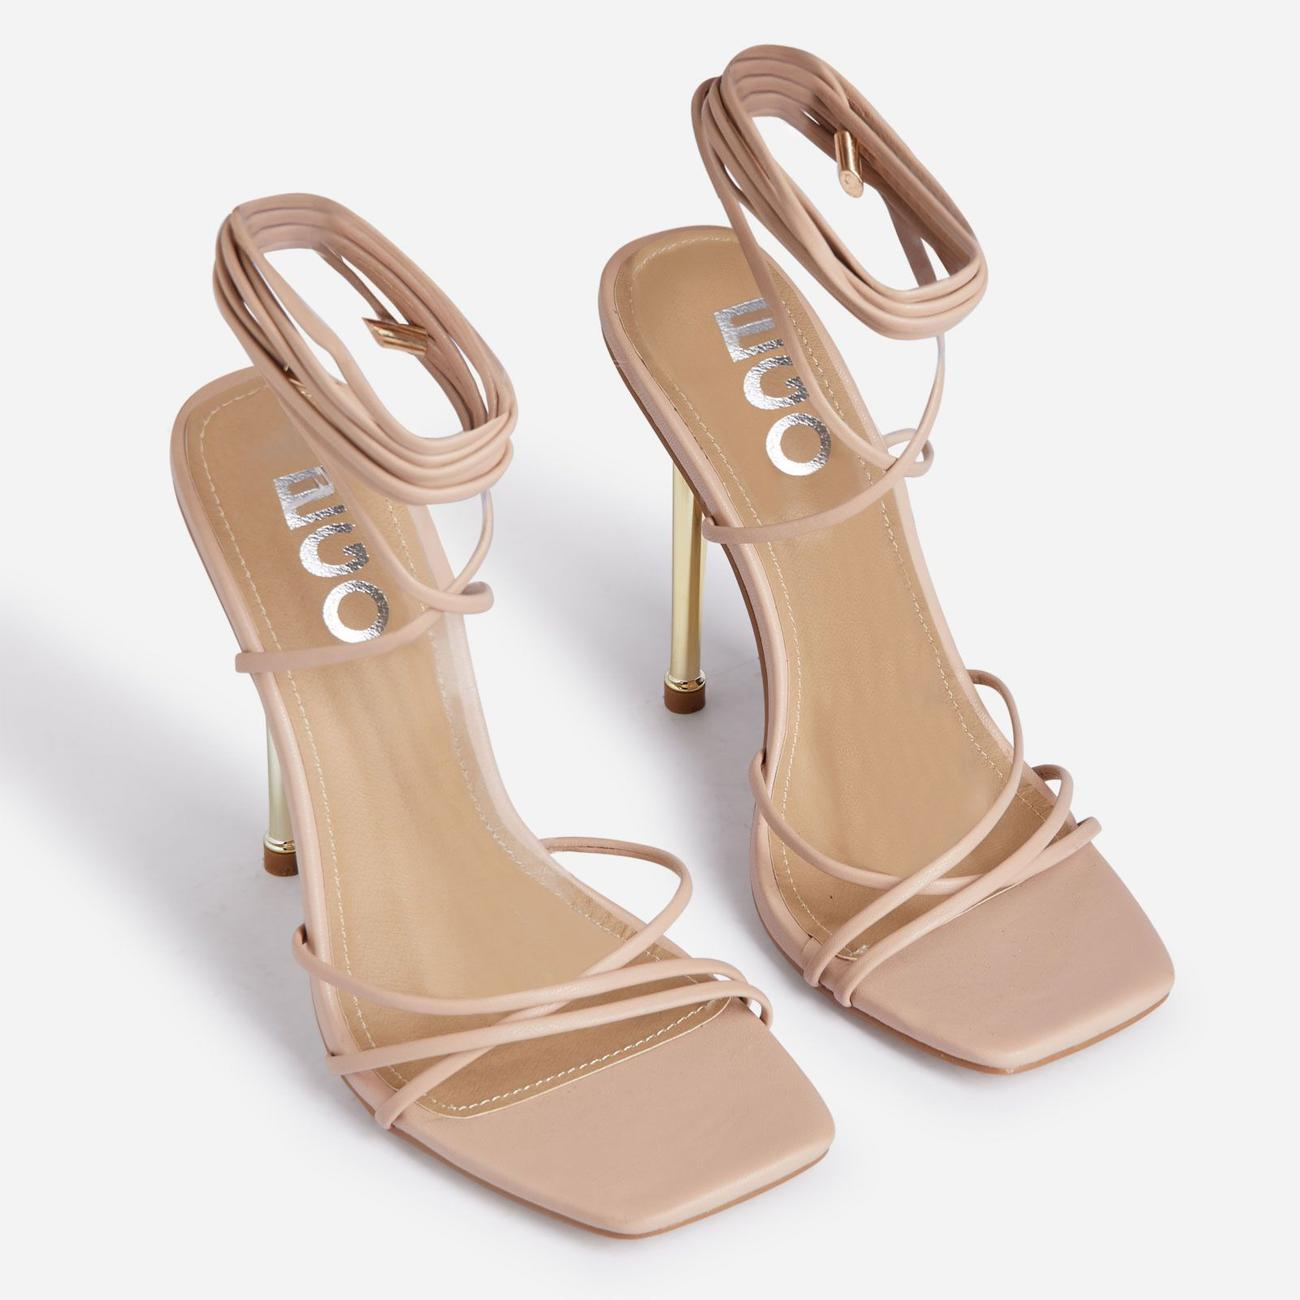 Word-Up Lace Up Square Toe Heel In Nude Faux Leather Image 2